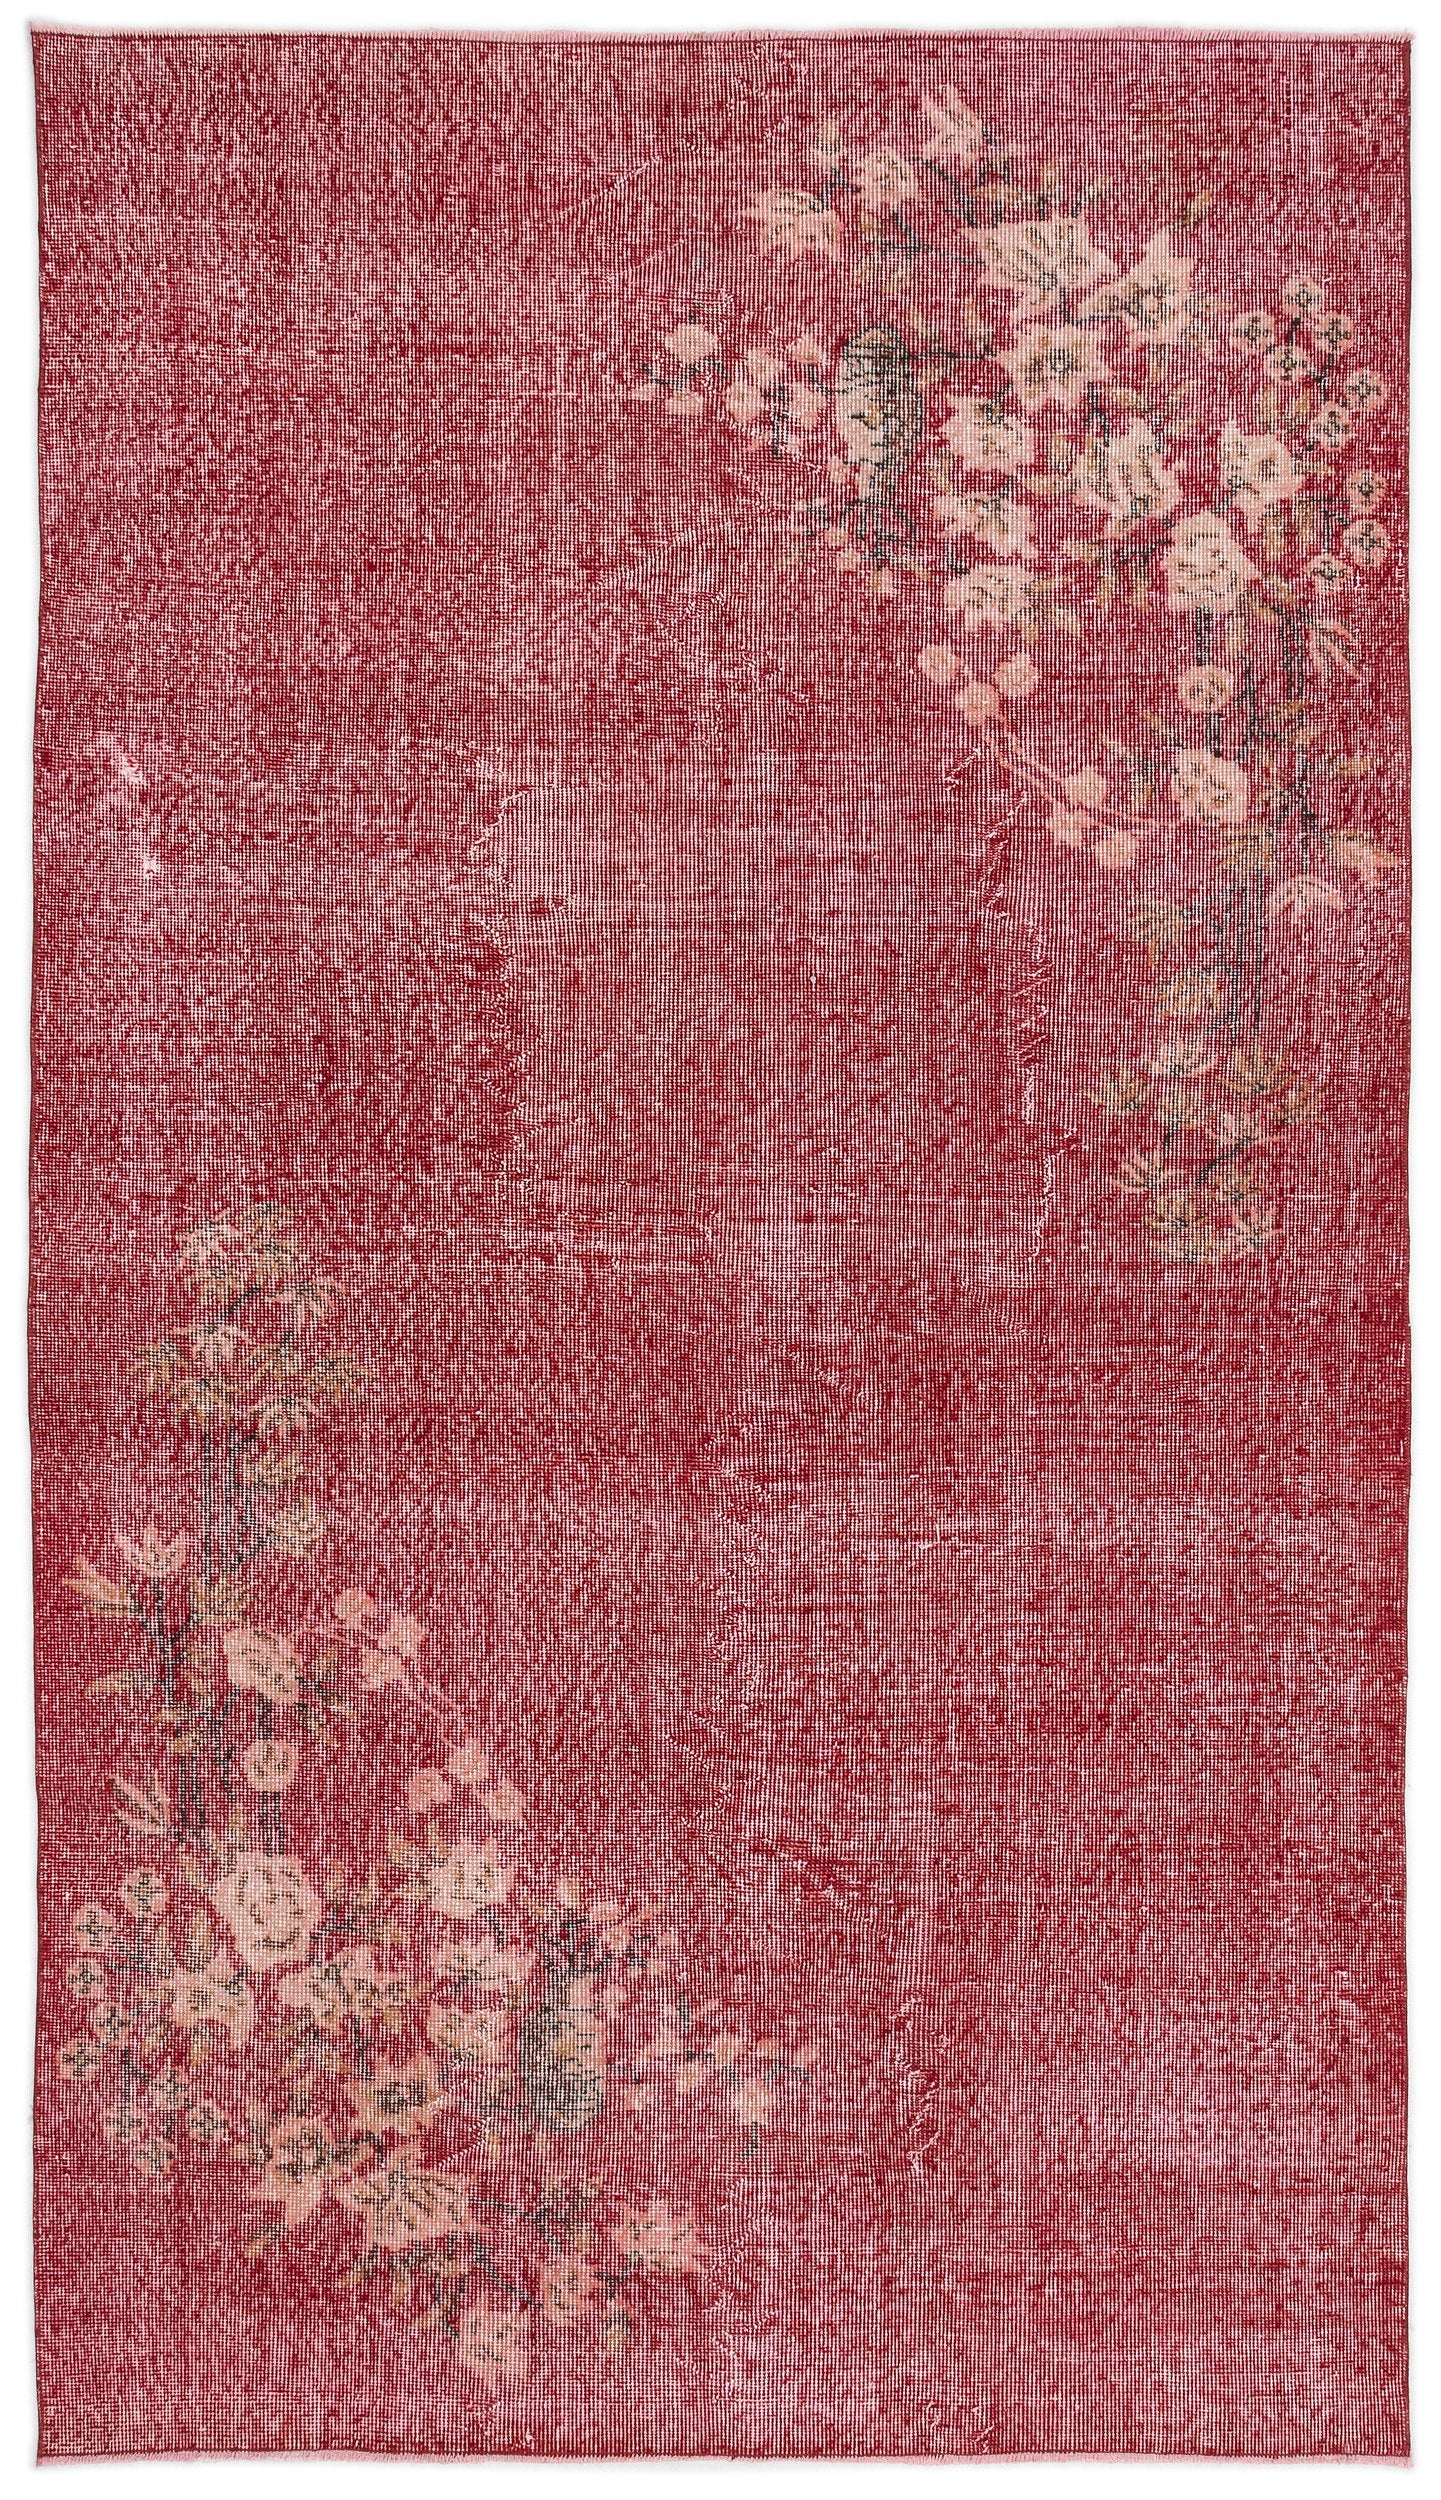 Retro Over Dyed Vintage Rug 4'10'' x 8'5'' ft 147 x 257 cm